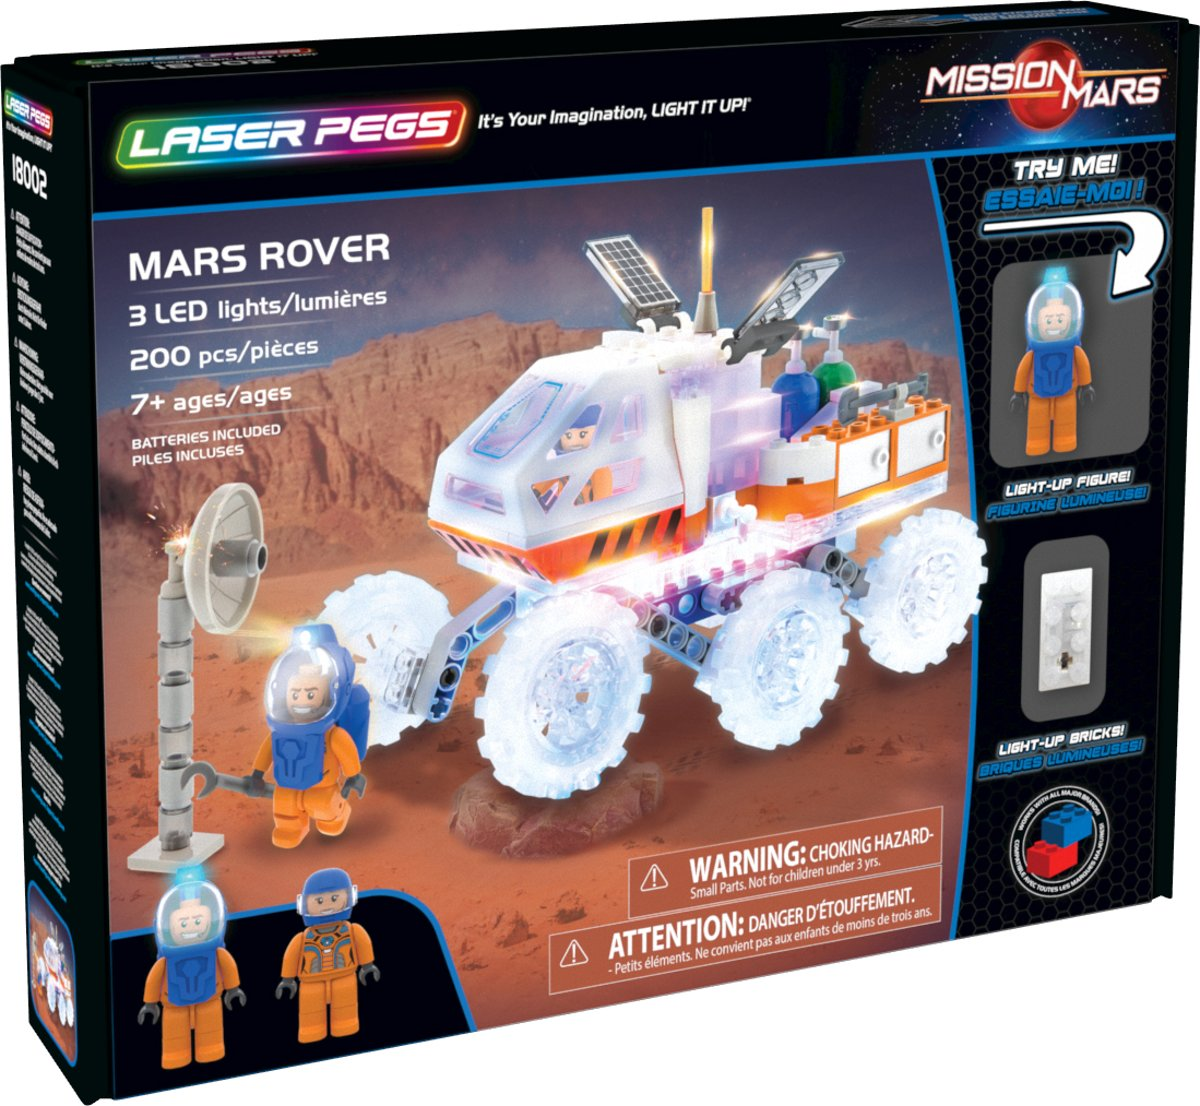 Laser Pegs Mission Mars Rover - Constructiespeelgoed